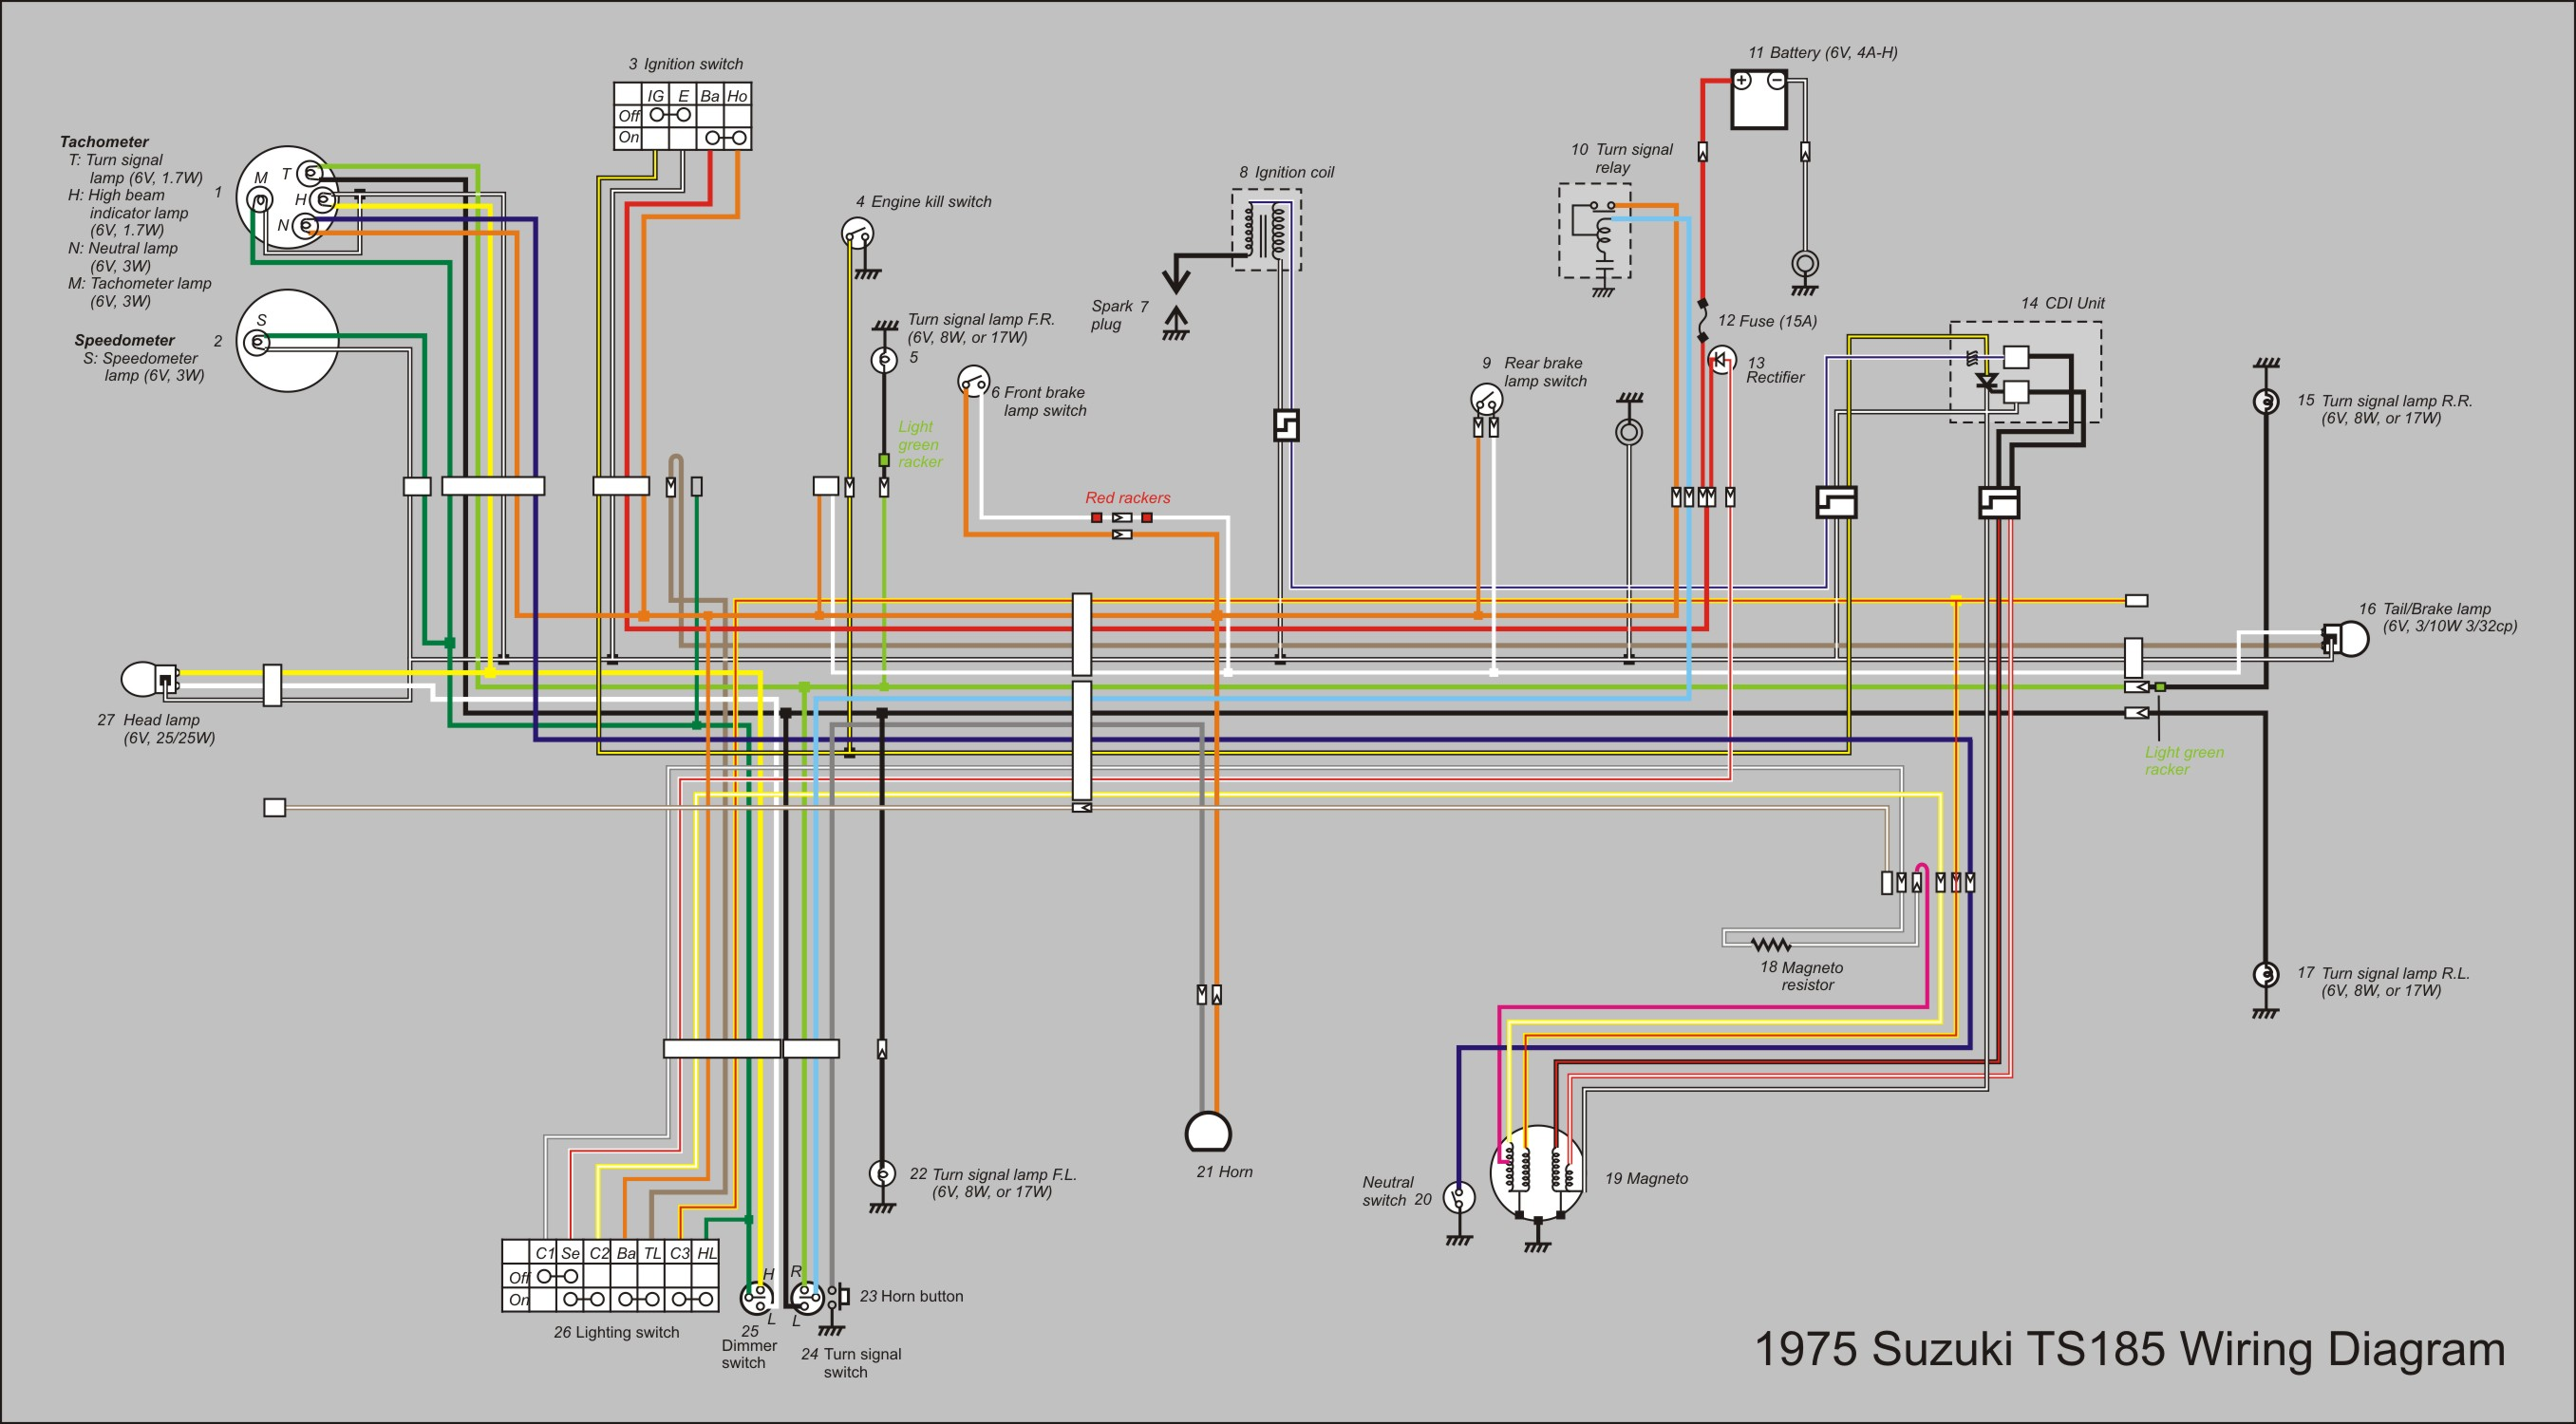 file ts185 wiring diagram new jpg wikimedia commons rh commons wikimedia  org 1971 175 Suzuki Dirt Bike 1970 Suzuki TS185